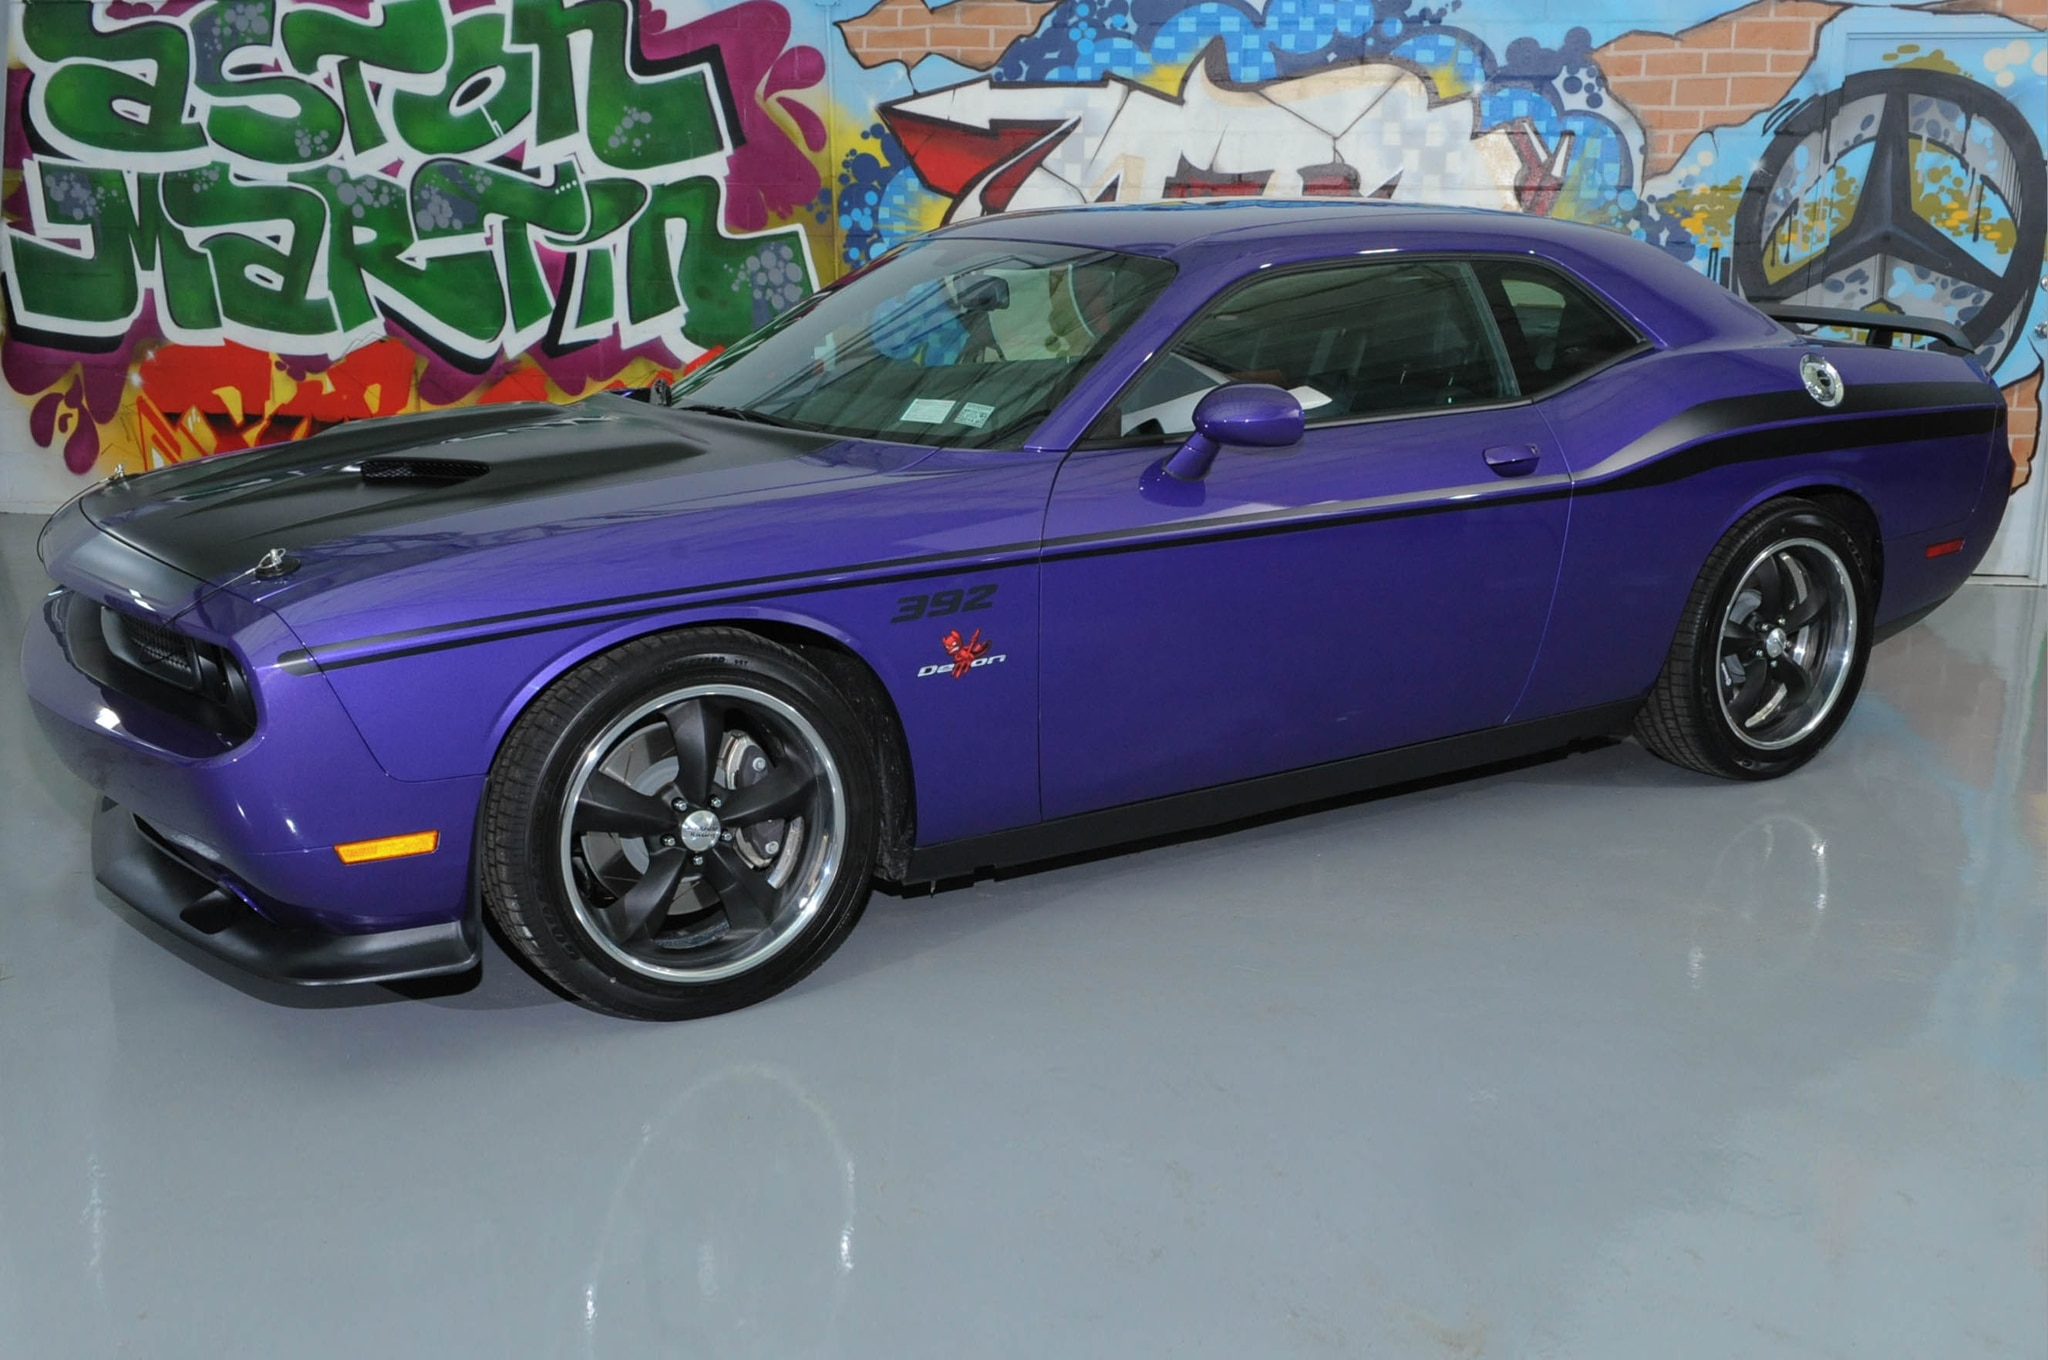 srt adds satin vapor editions for 300 challenger and charger srt models automobile magazine. Black Bedroom Furniture Sets. Home Design Ideas